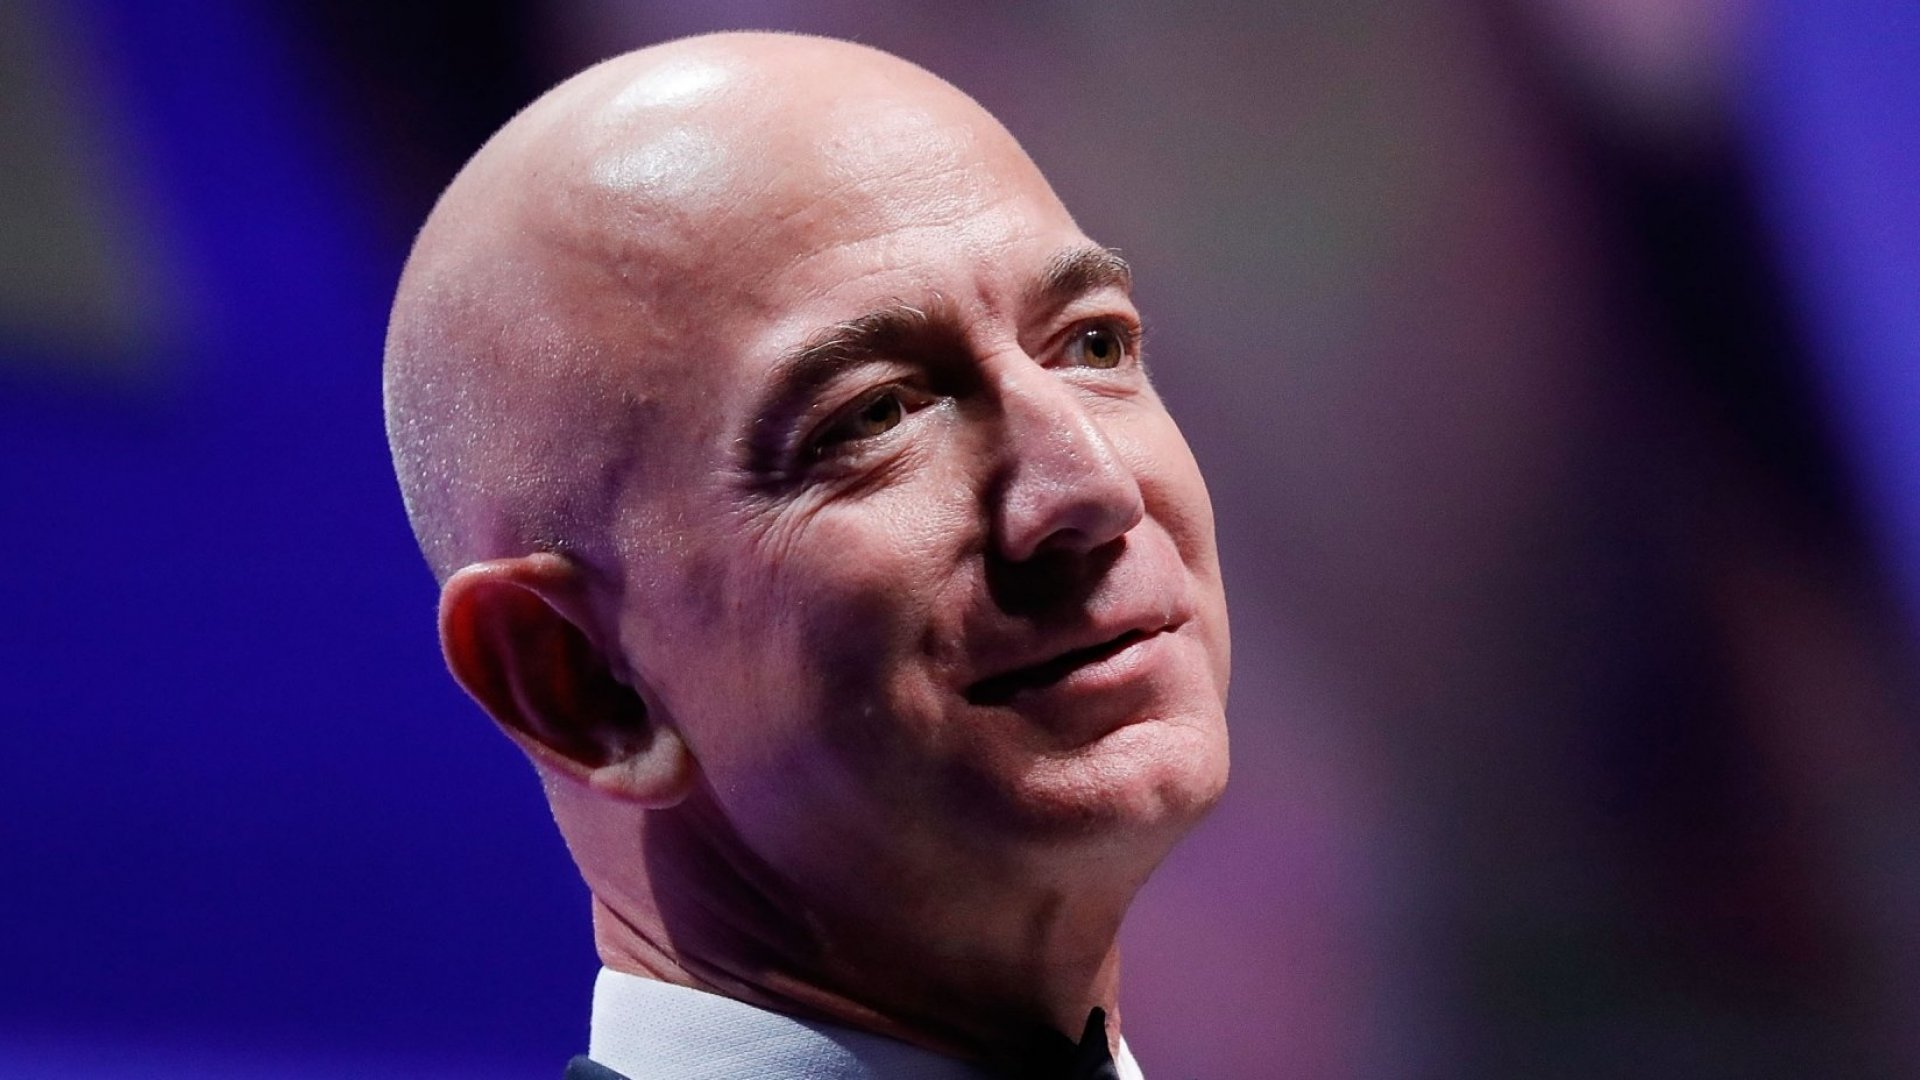 Amazon's Jeff Bezos Just Proved That All Those Rich And Famous Do-What-I-Do Stories Are Nonsense